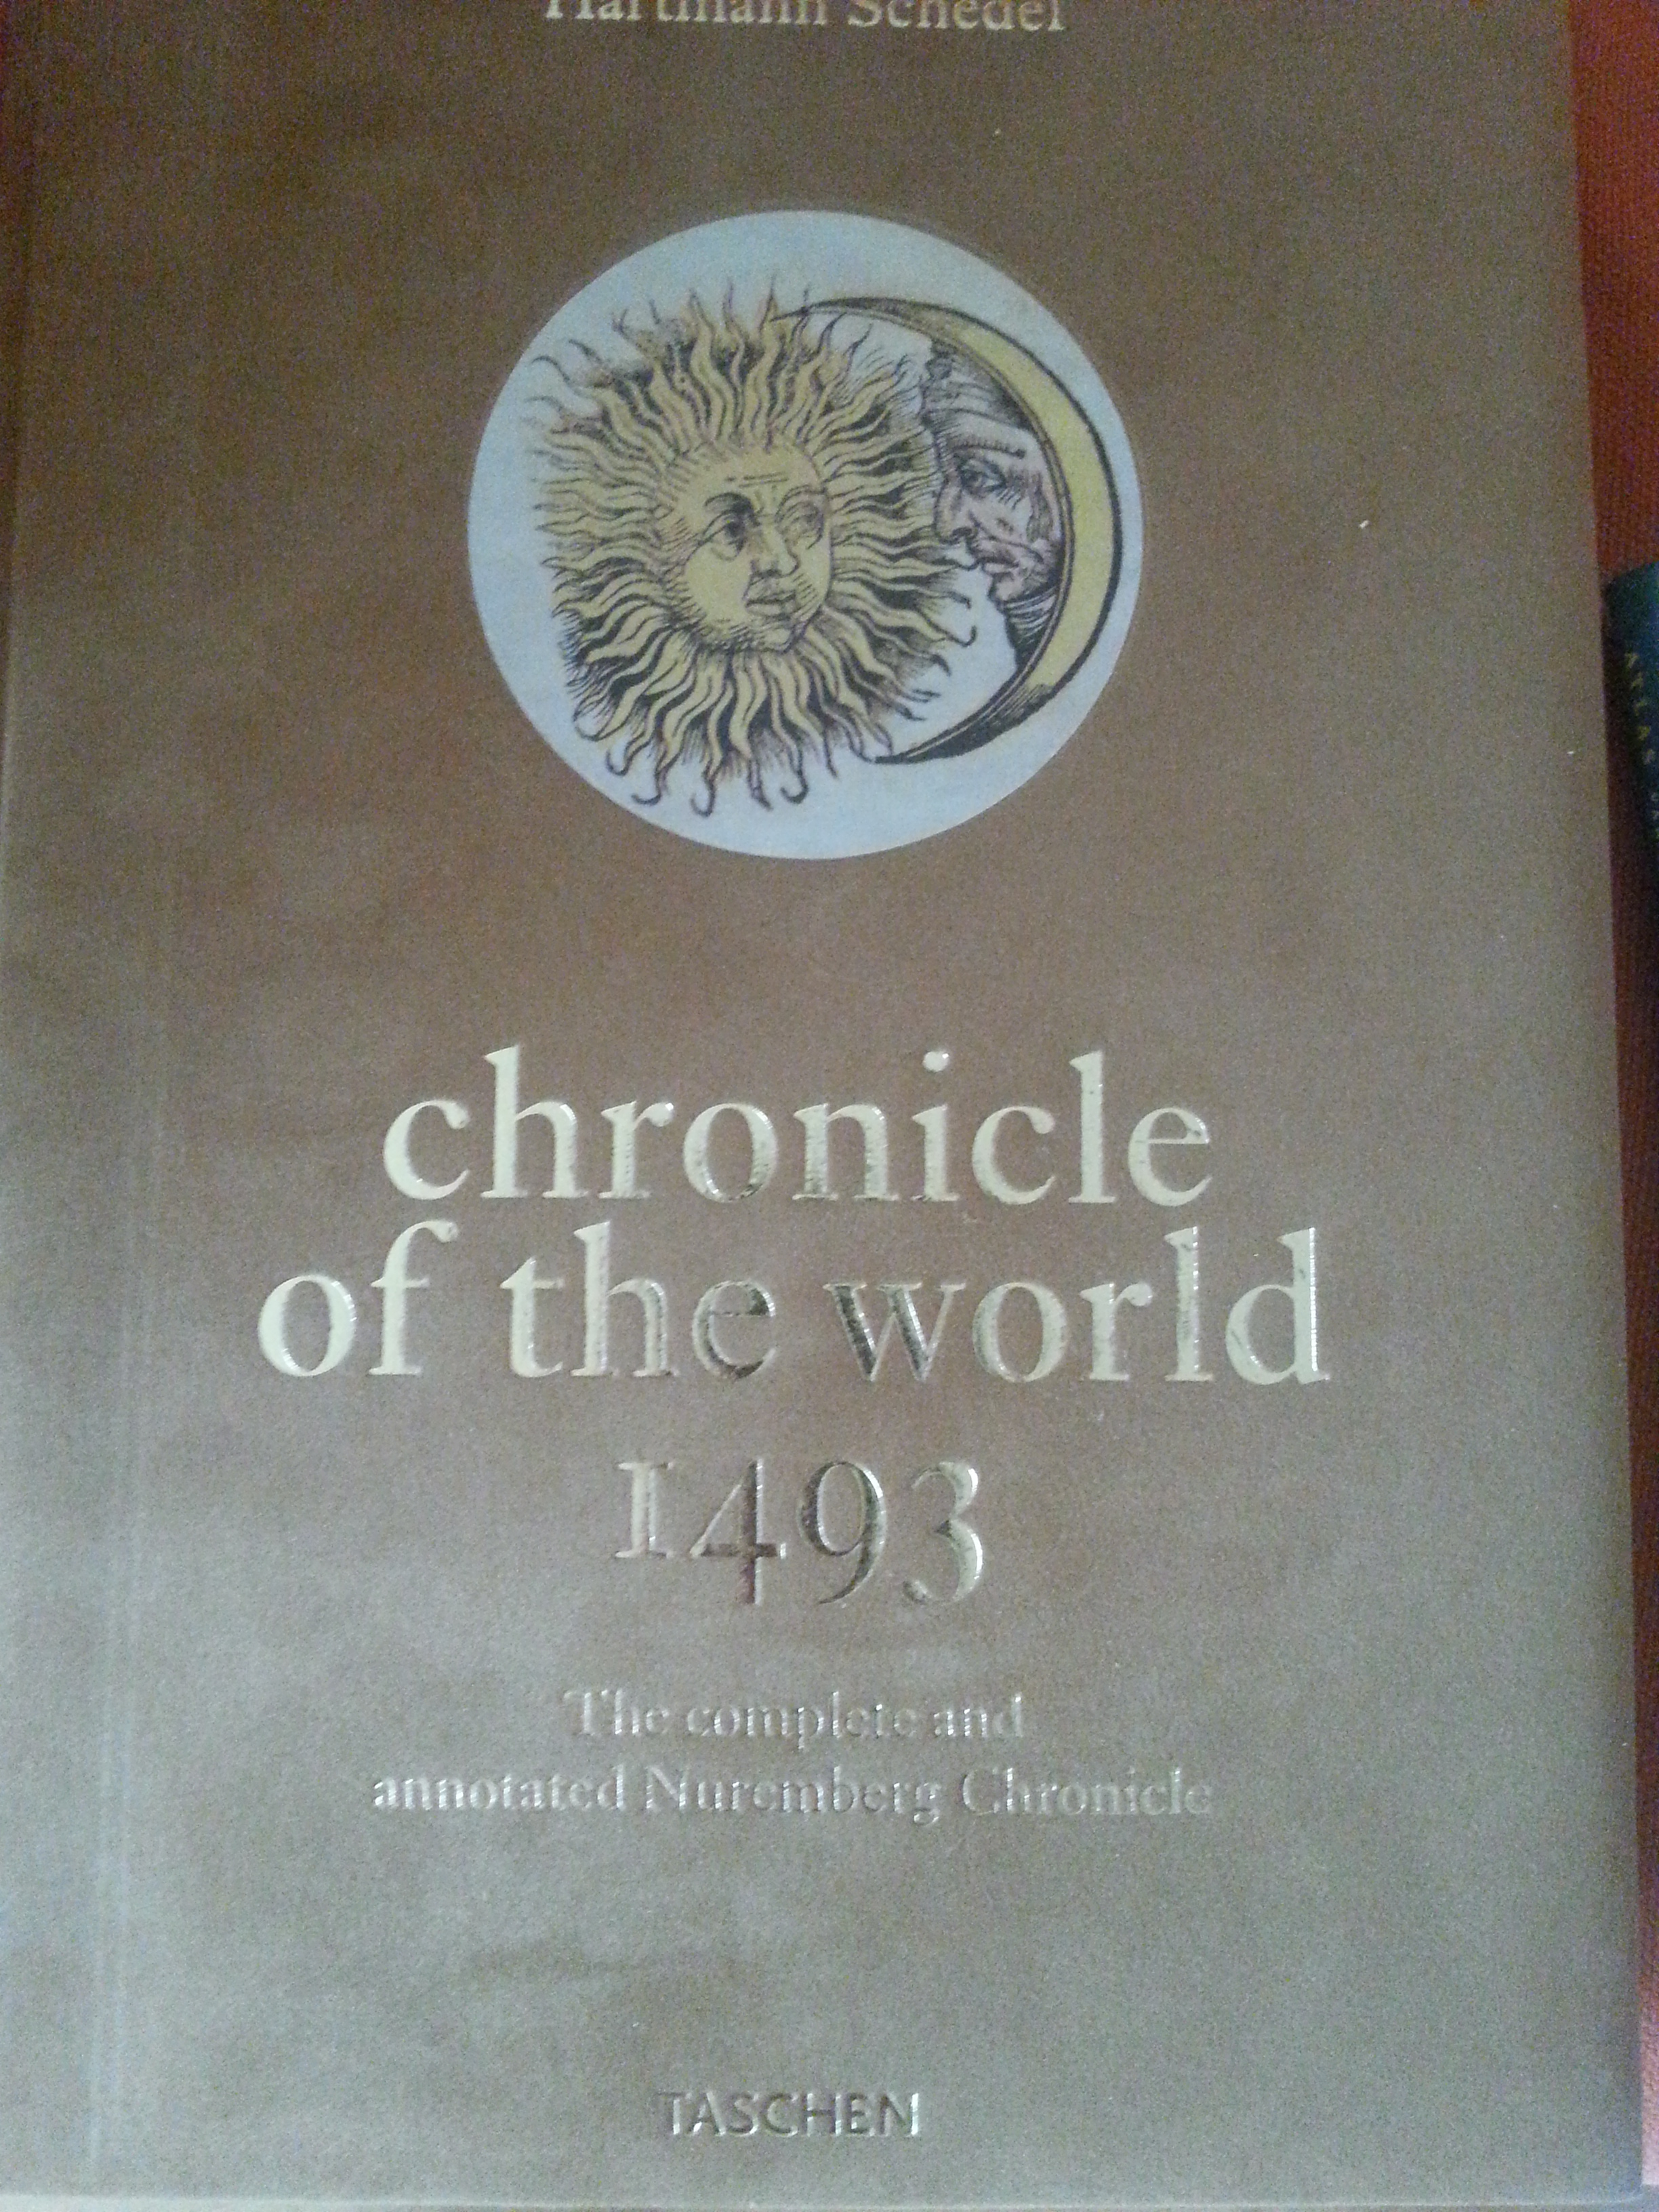 E.g.: in the Chronicle of the world from 1493...